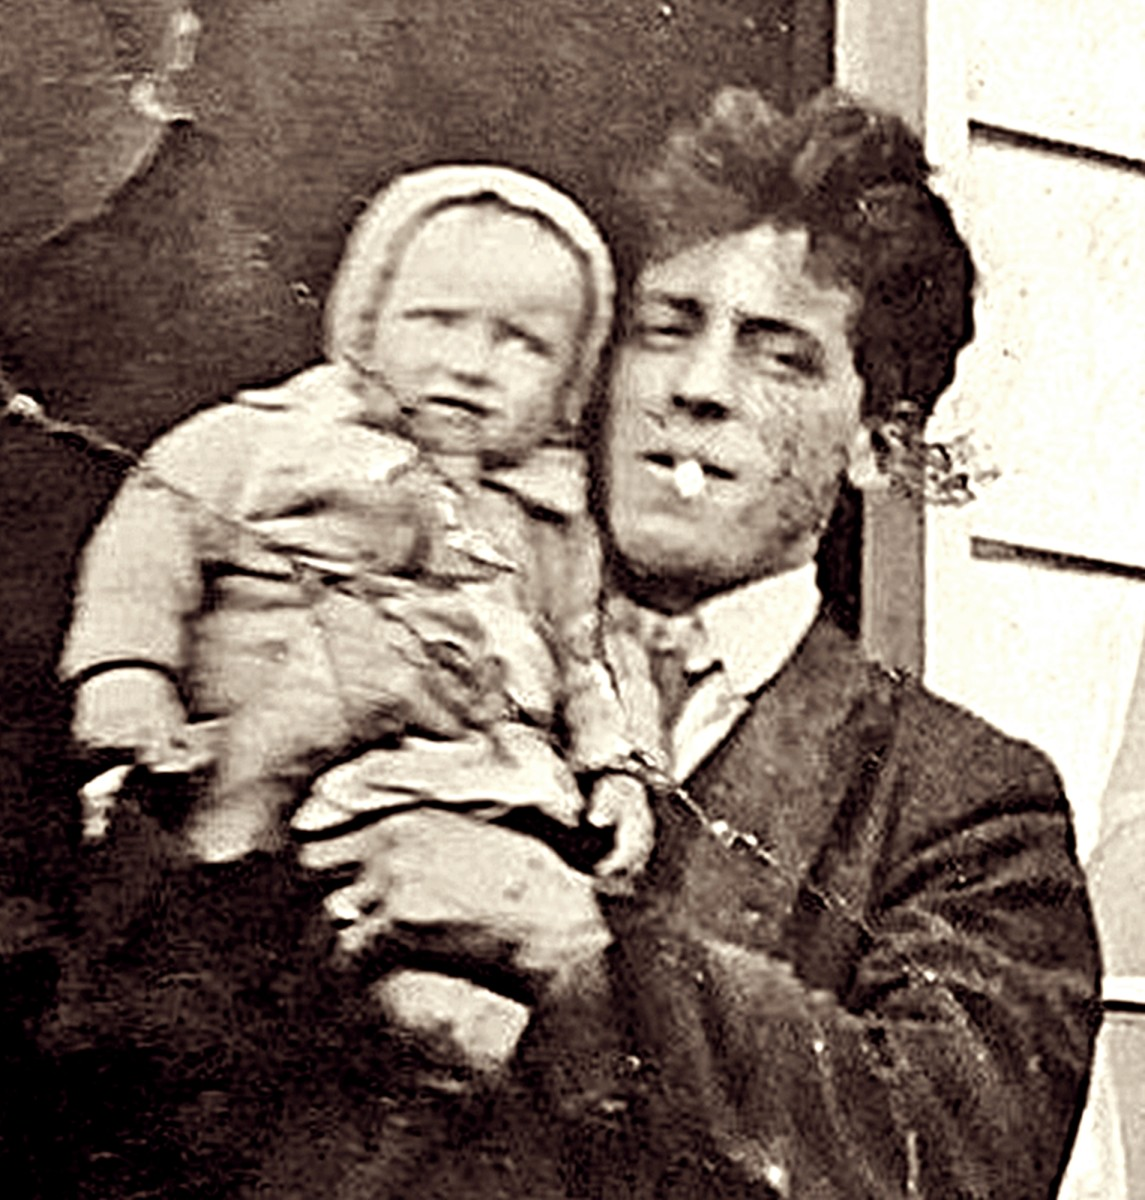 My grandad, Frank Trigg, with my mum, Audrey, as a baby in the late 1920s